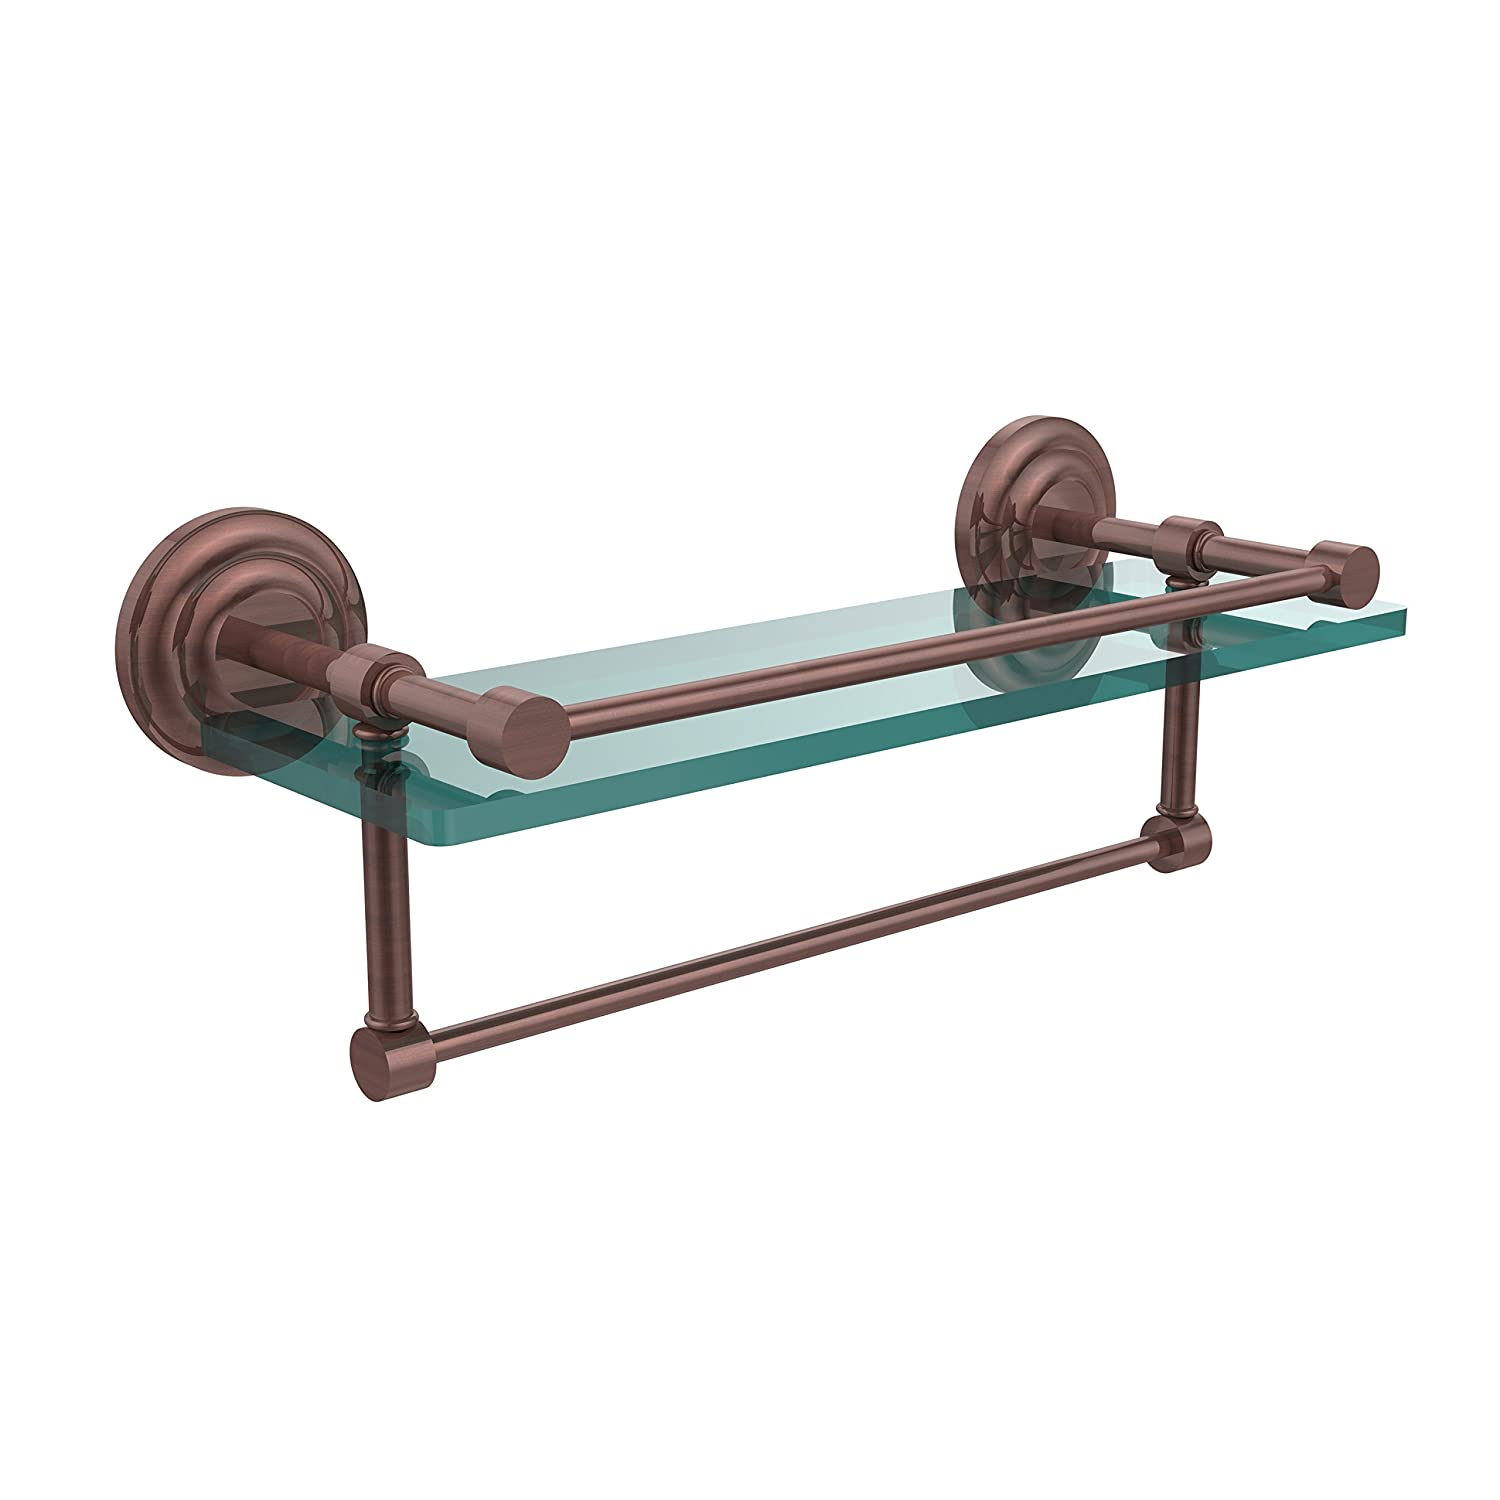 Allied Brass QN-1TB 16-GAL-CA 16 Inch Gallery Glass Shelf with Towel Bar Antique Copper